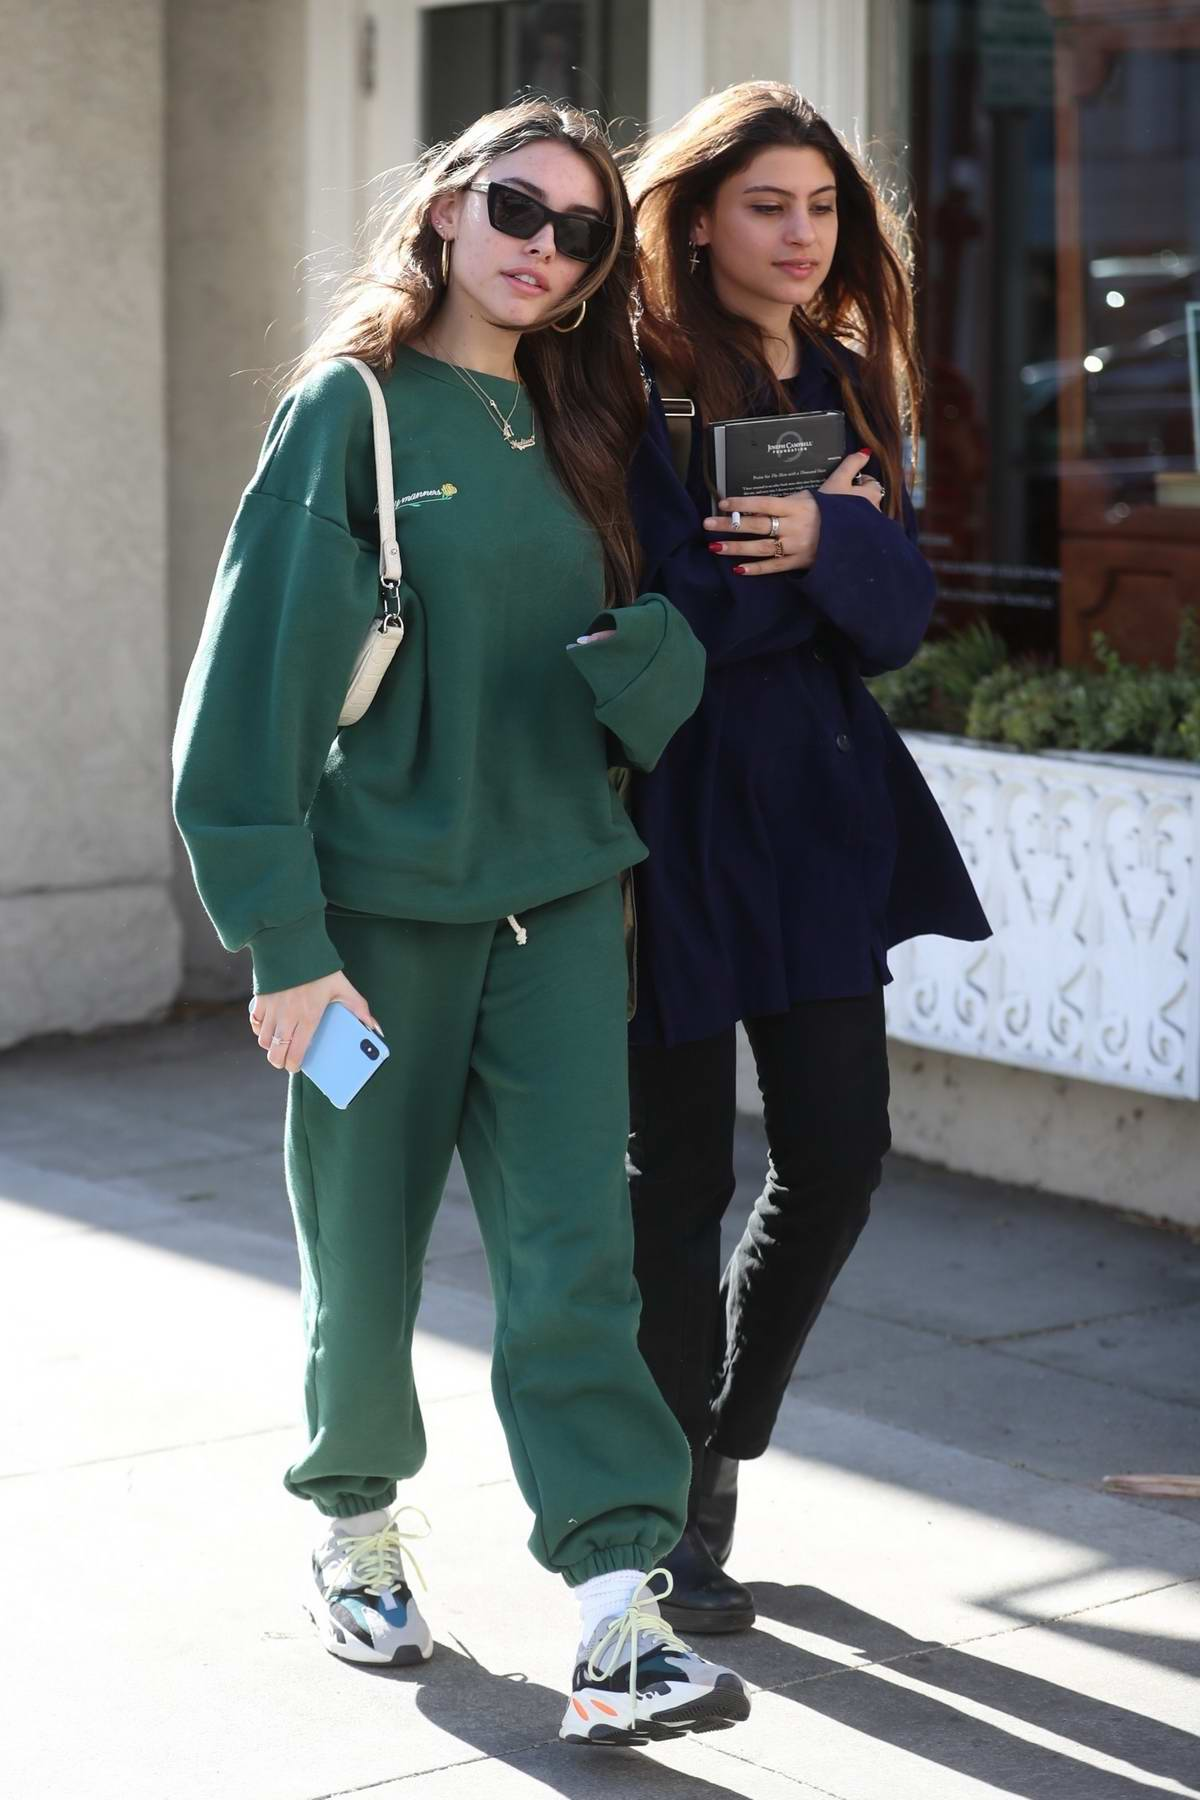 Madison Beer looks comfy in green sweatsuit while out for lunch with friends at Croft Alley in Beverly Hills, California